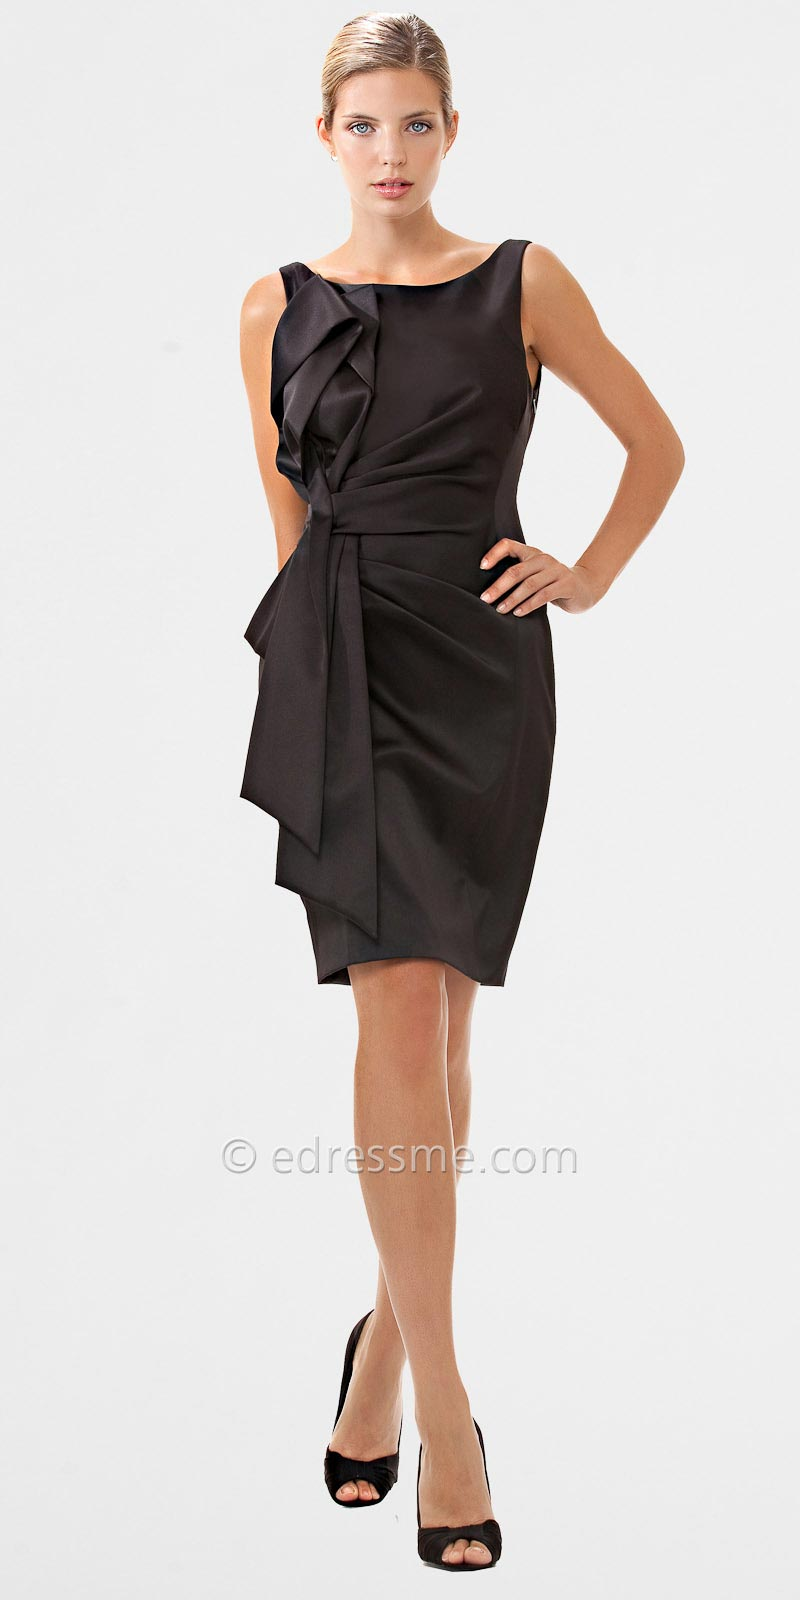 Black Cocktail Dress 2013 Miss 24